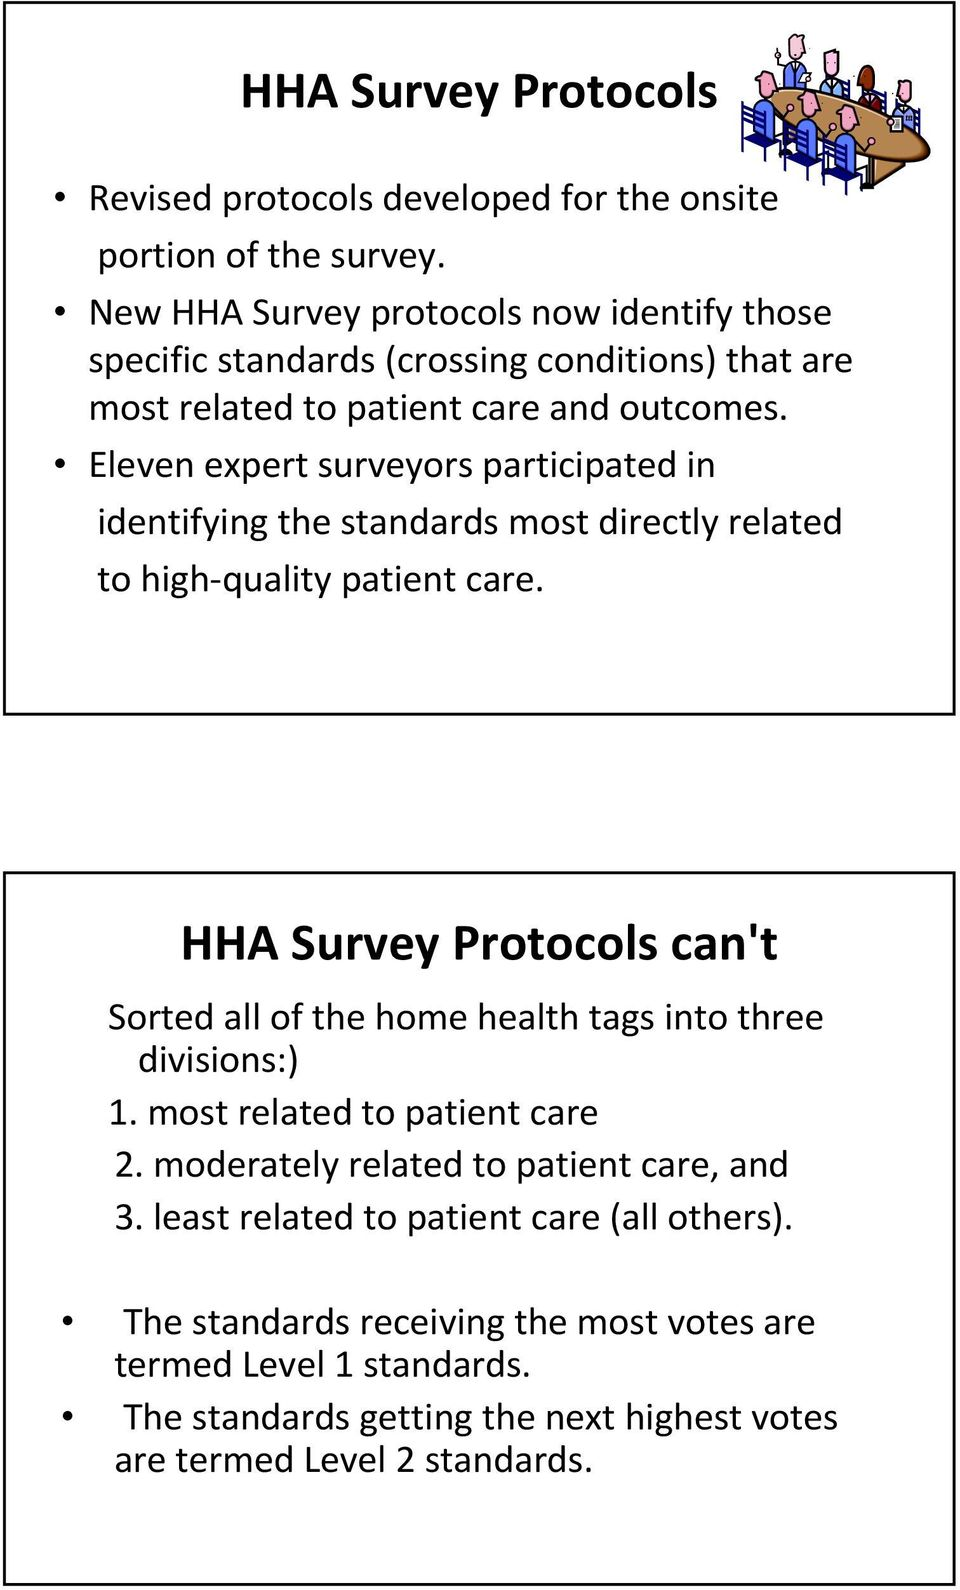 Eleven expert surveyors participated in identifying the standards most directly related to high quality patient care.